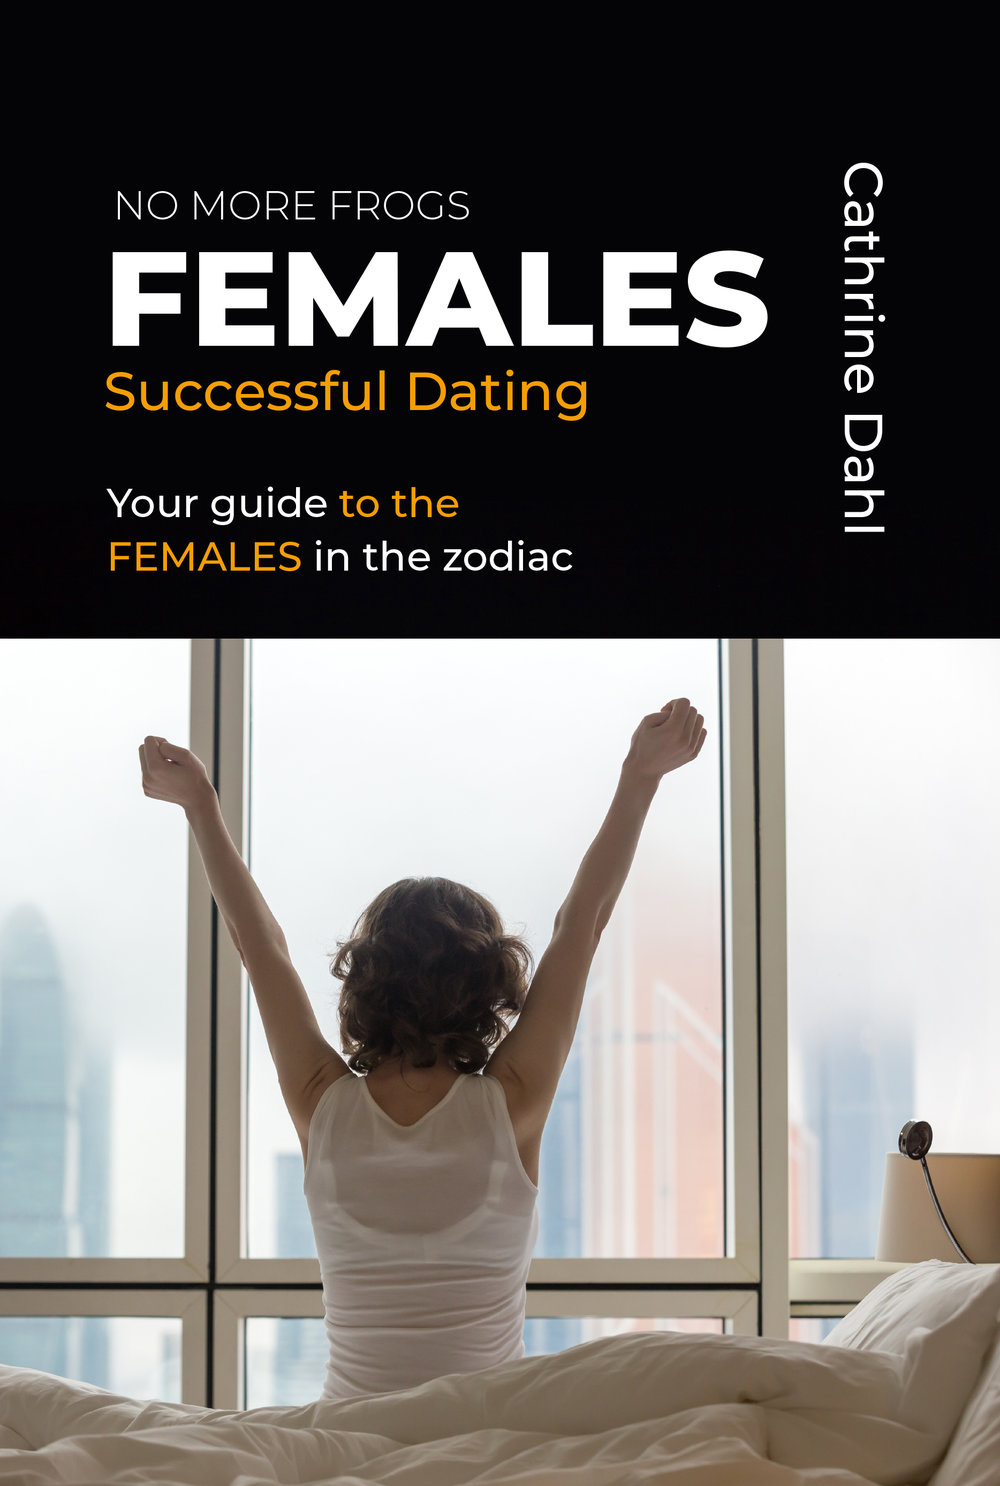 Your Guide toThe Females - Discover the mysteries behind the women in the zodiac and get a head start before going on a date. This complete manual includes all the twelve star signs.424 pagesPaperback USD 23.99